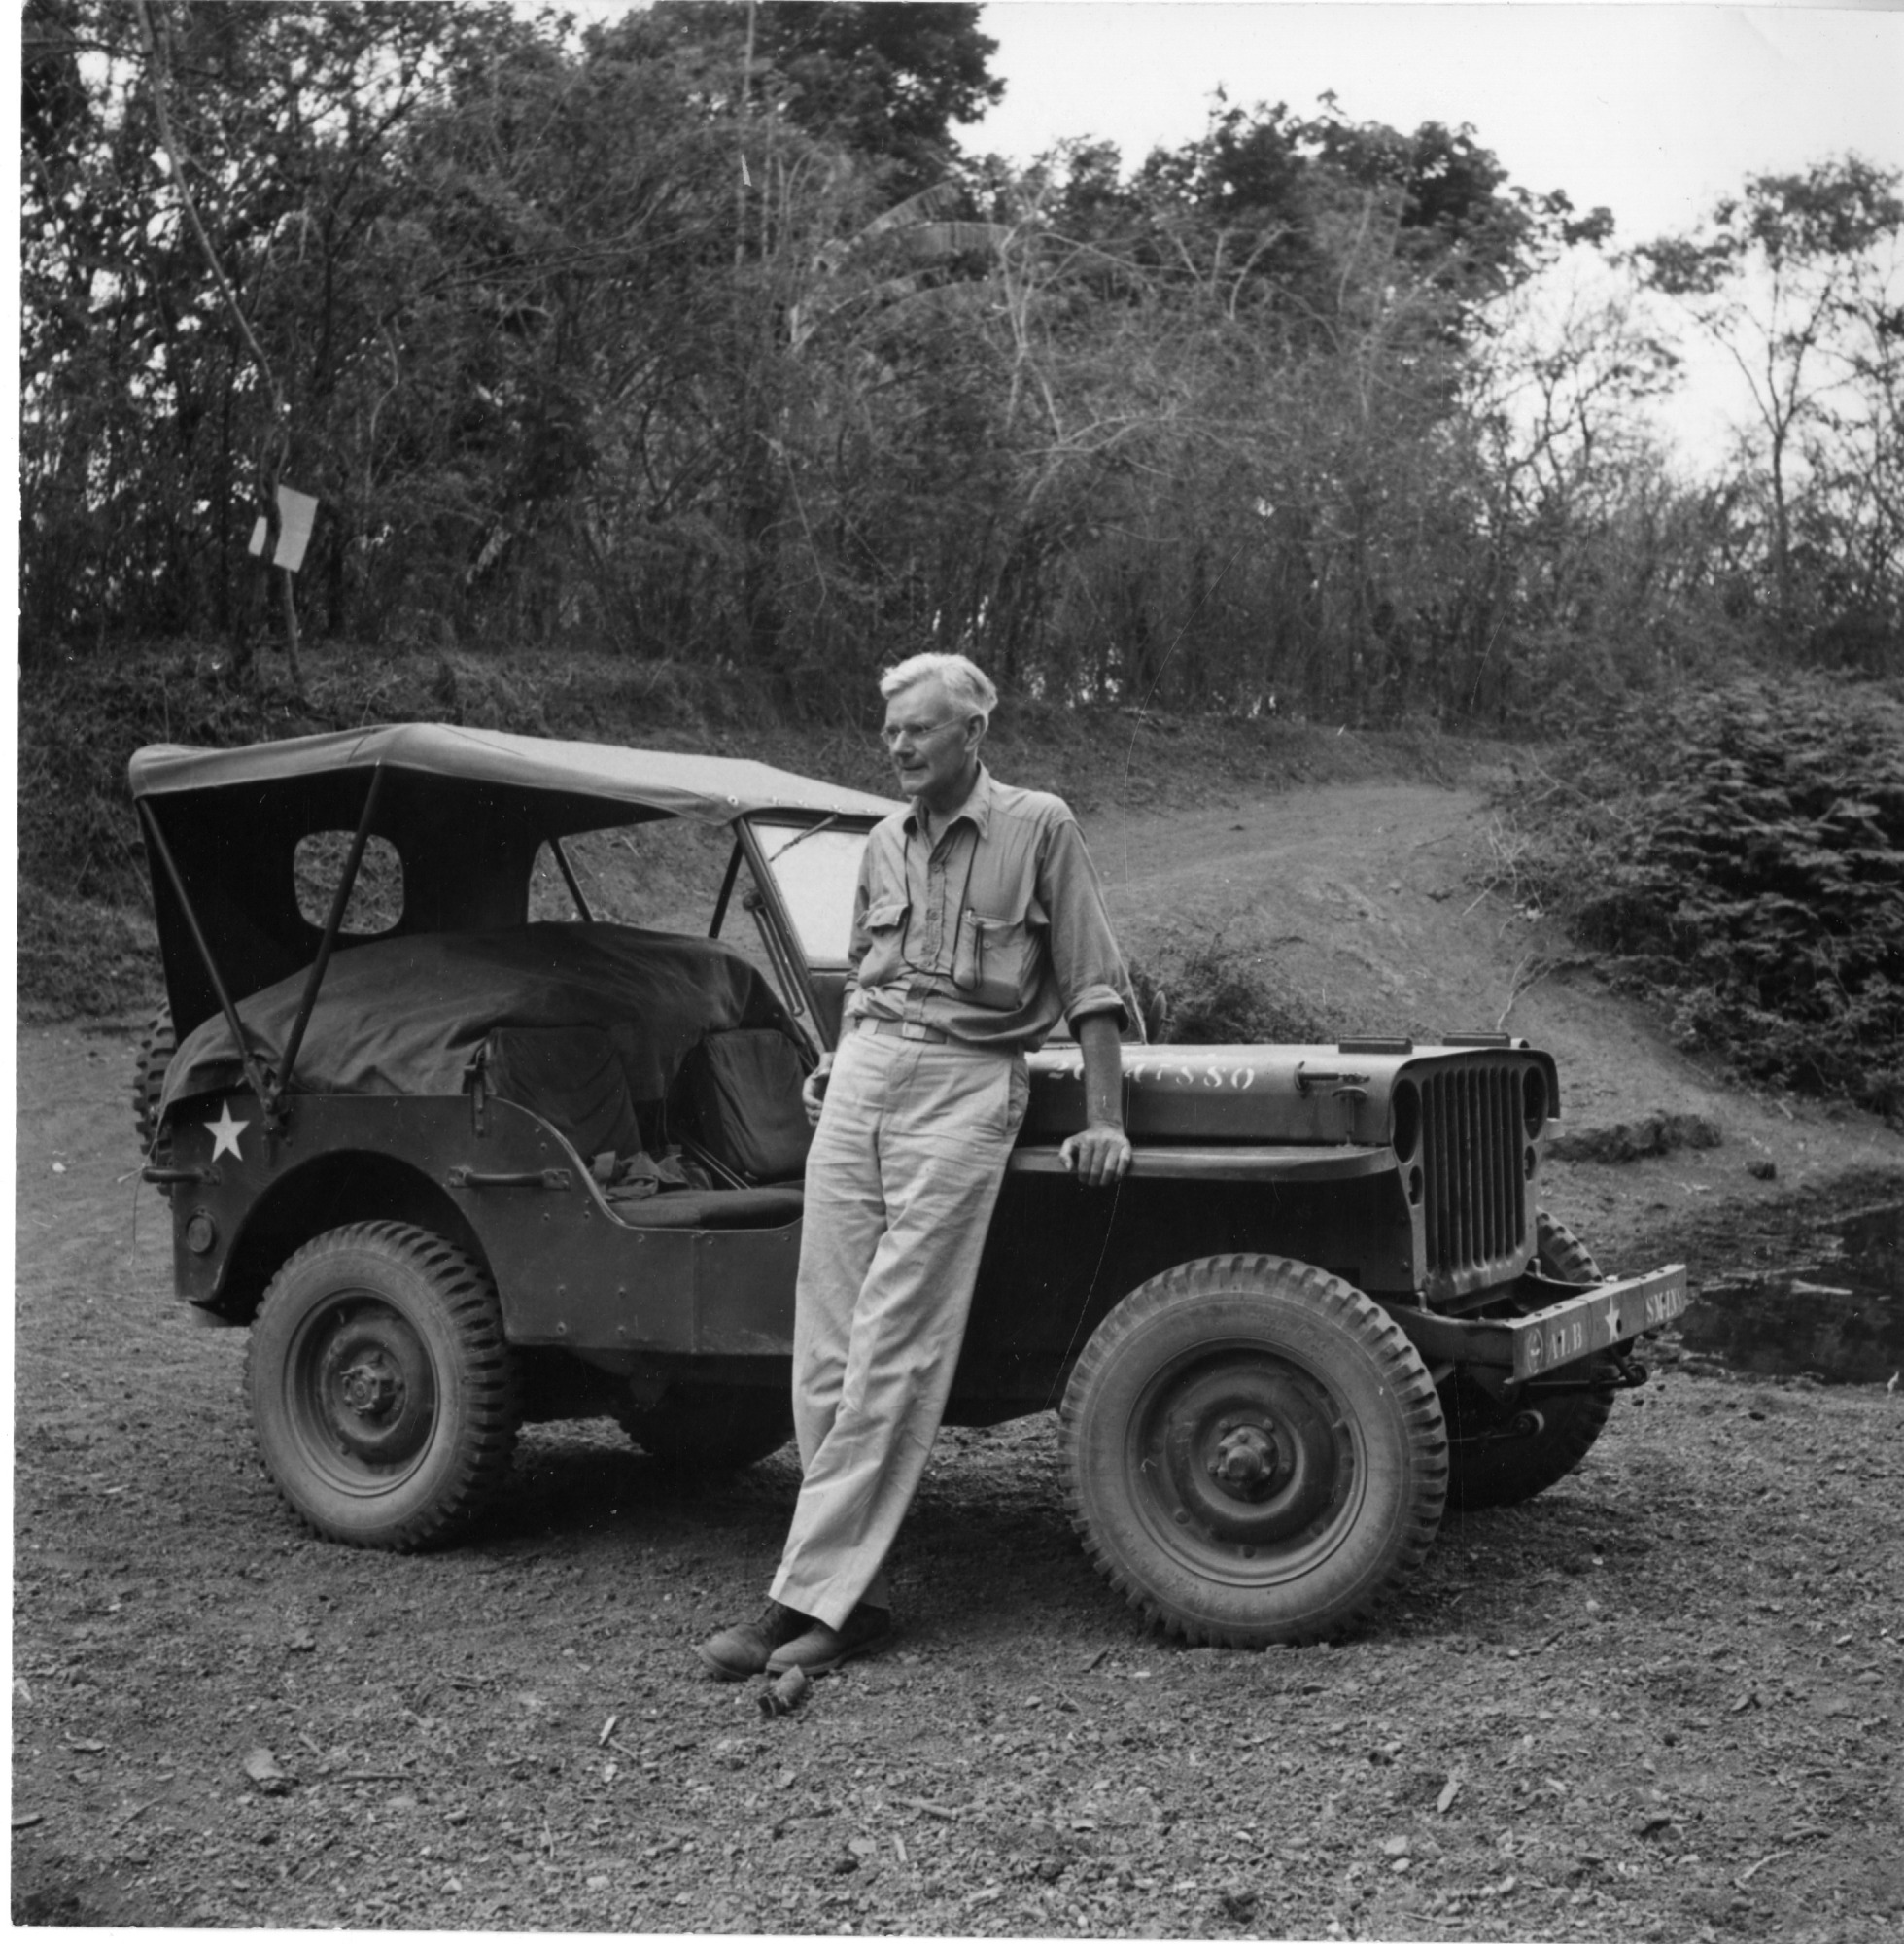 Alexander Wetmore Standing Next to Jeep at Rio Las Tablas, Panama